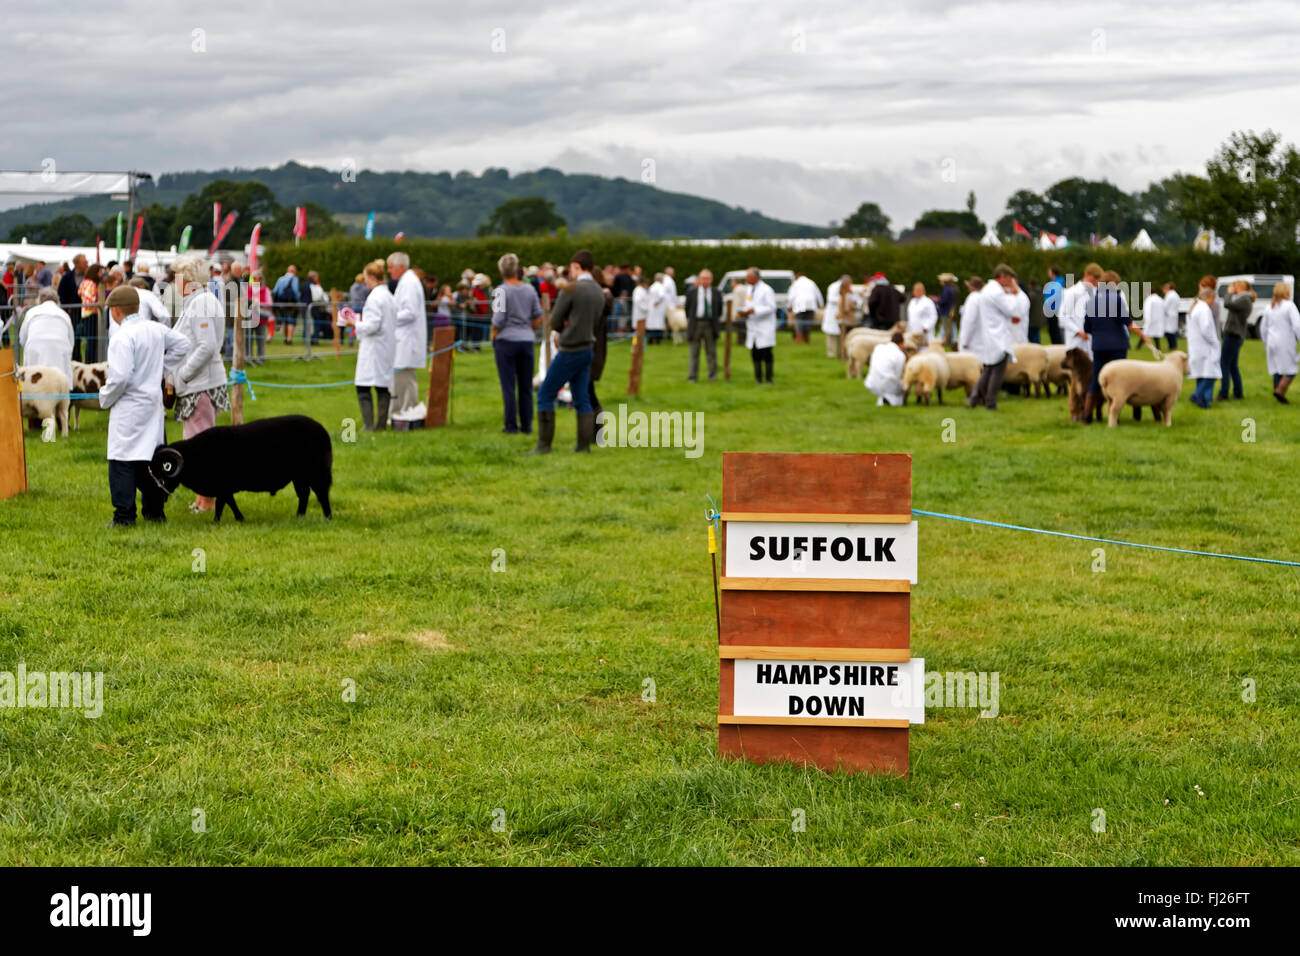 A Sheep competition at the 2015 Gillingham & Shaftesbury Agricultural Show, Dorset, United Kingdom. - Stock Image